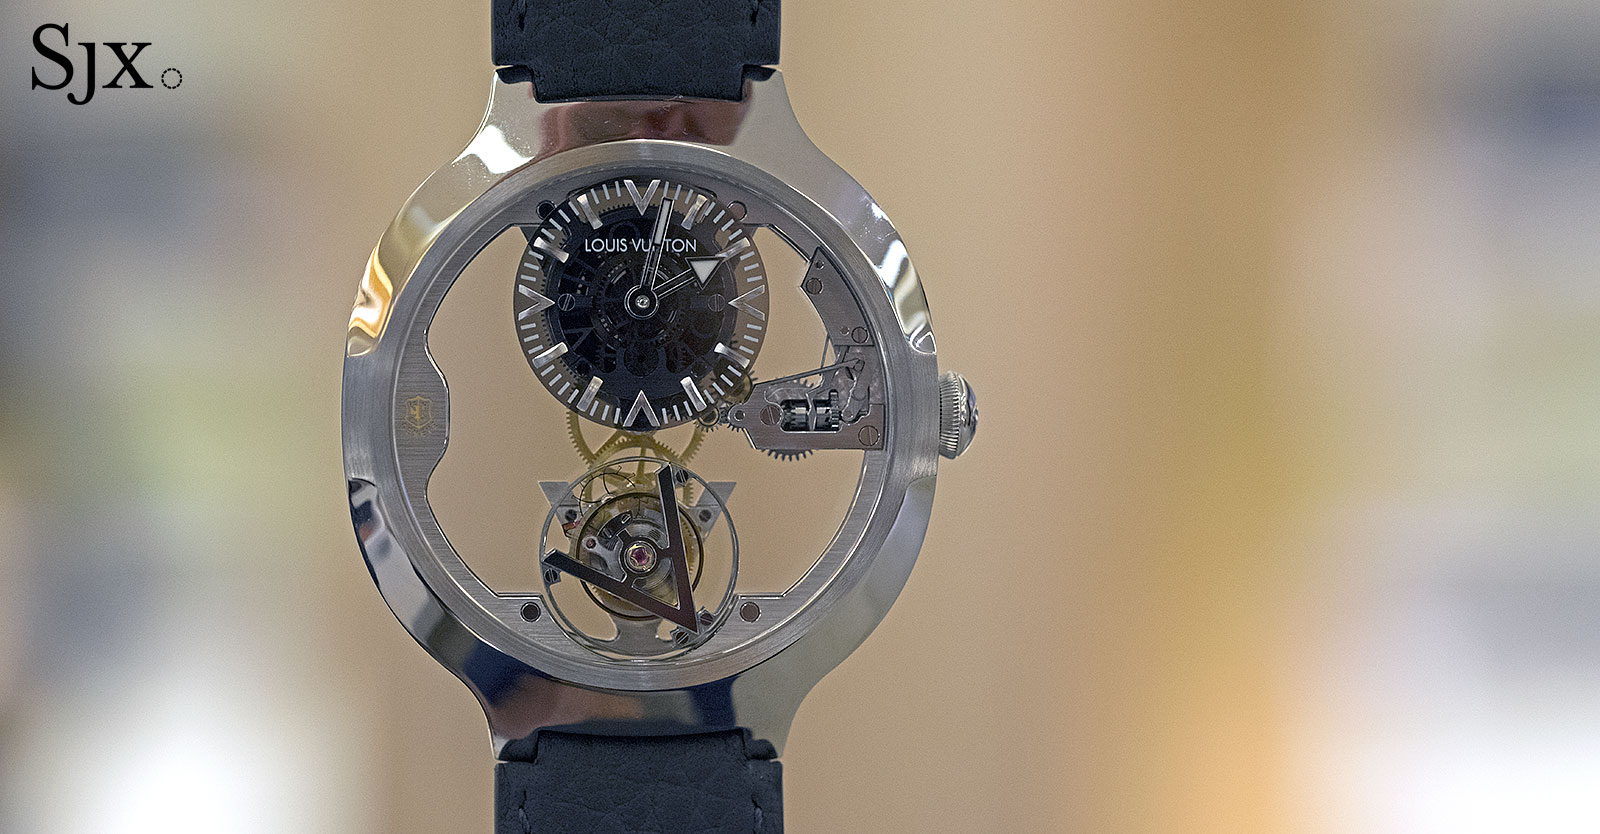 Louis Vuitton Flying Tourbillon Poinçon de Genève 8